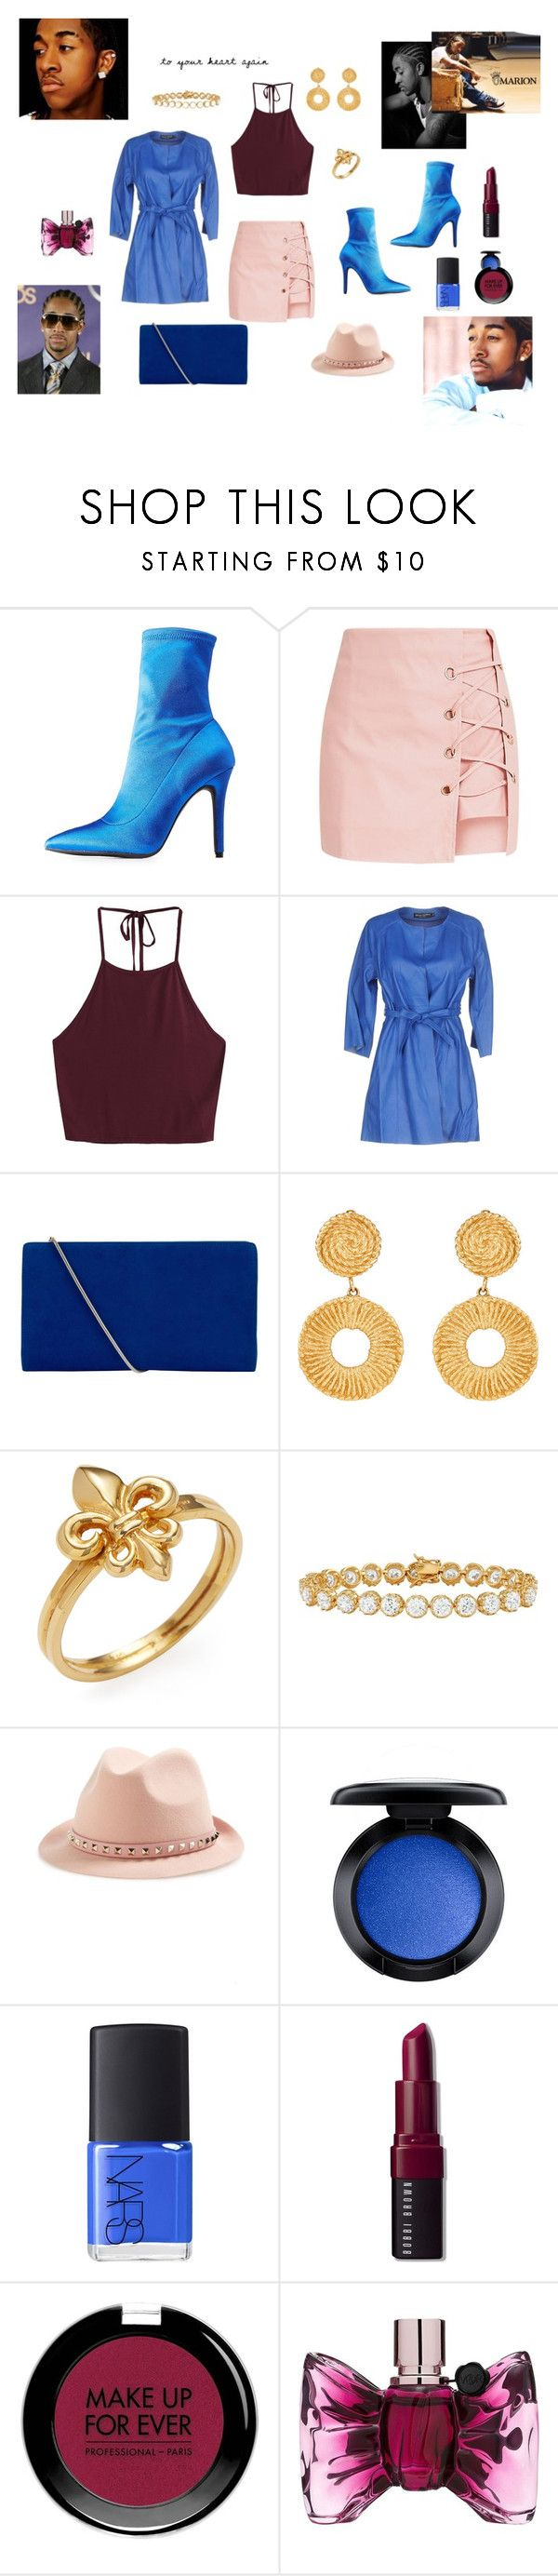 """""""grammys hip pop"""" by vincenza-adamo ❤ liked on Polyvore featuring Børn, Qupid, Street Leathers, Hobbs, Valentino, MAC Cosmetics, NARS Cosmetics, Bobbi Brown Cosmetics, MAKE UP FOR EVER and Viktor & Rolf"""